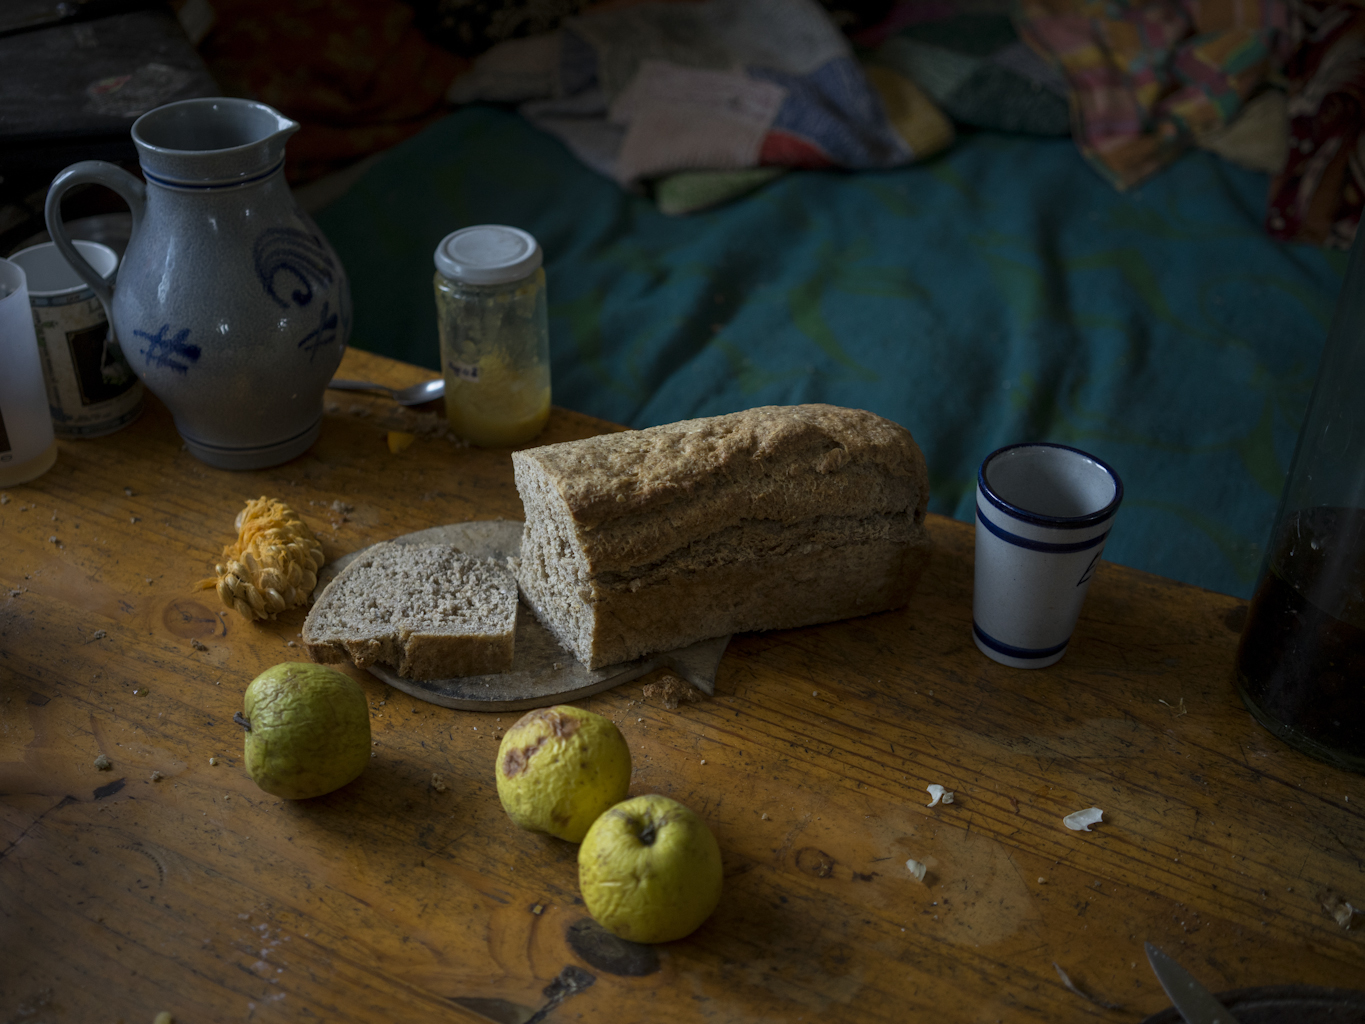 Kadi bakes bread every two days. Now, towards the end of the winter, fresh bread is one of the culinary highlights, because the food stored in autumn (especially the fresh), are slowly coming to an end. A handful of pumpkins and afew shriveled apples are still left.